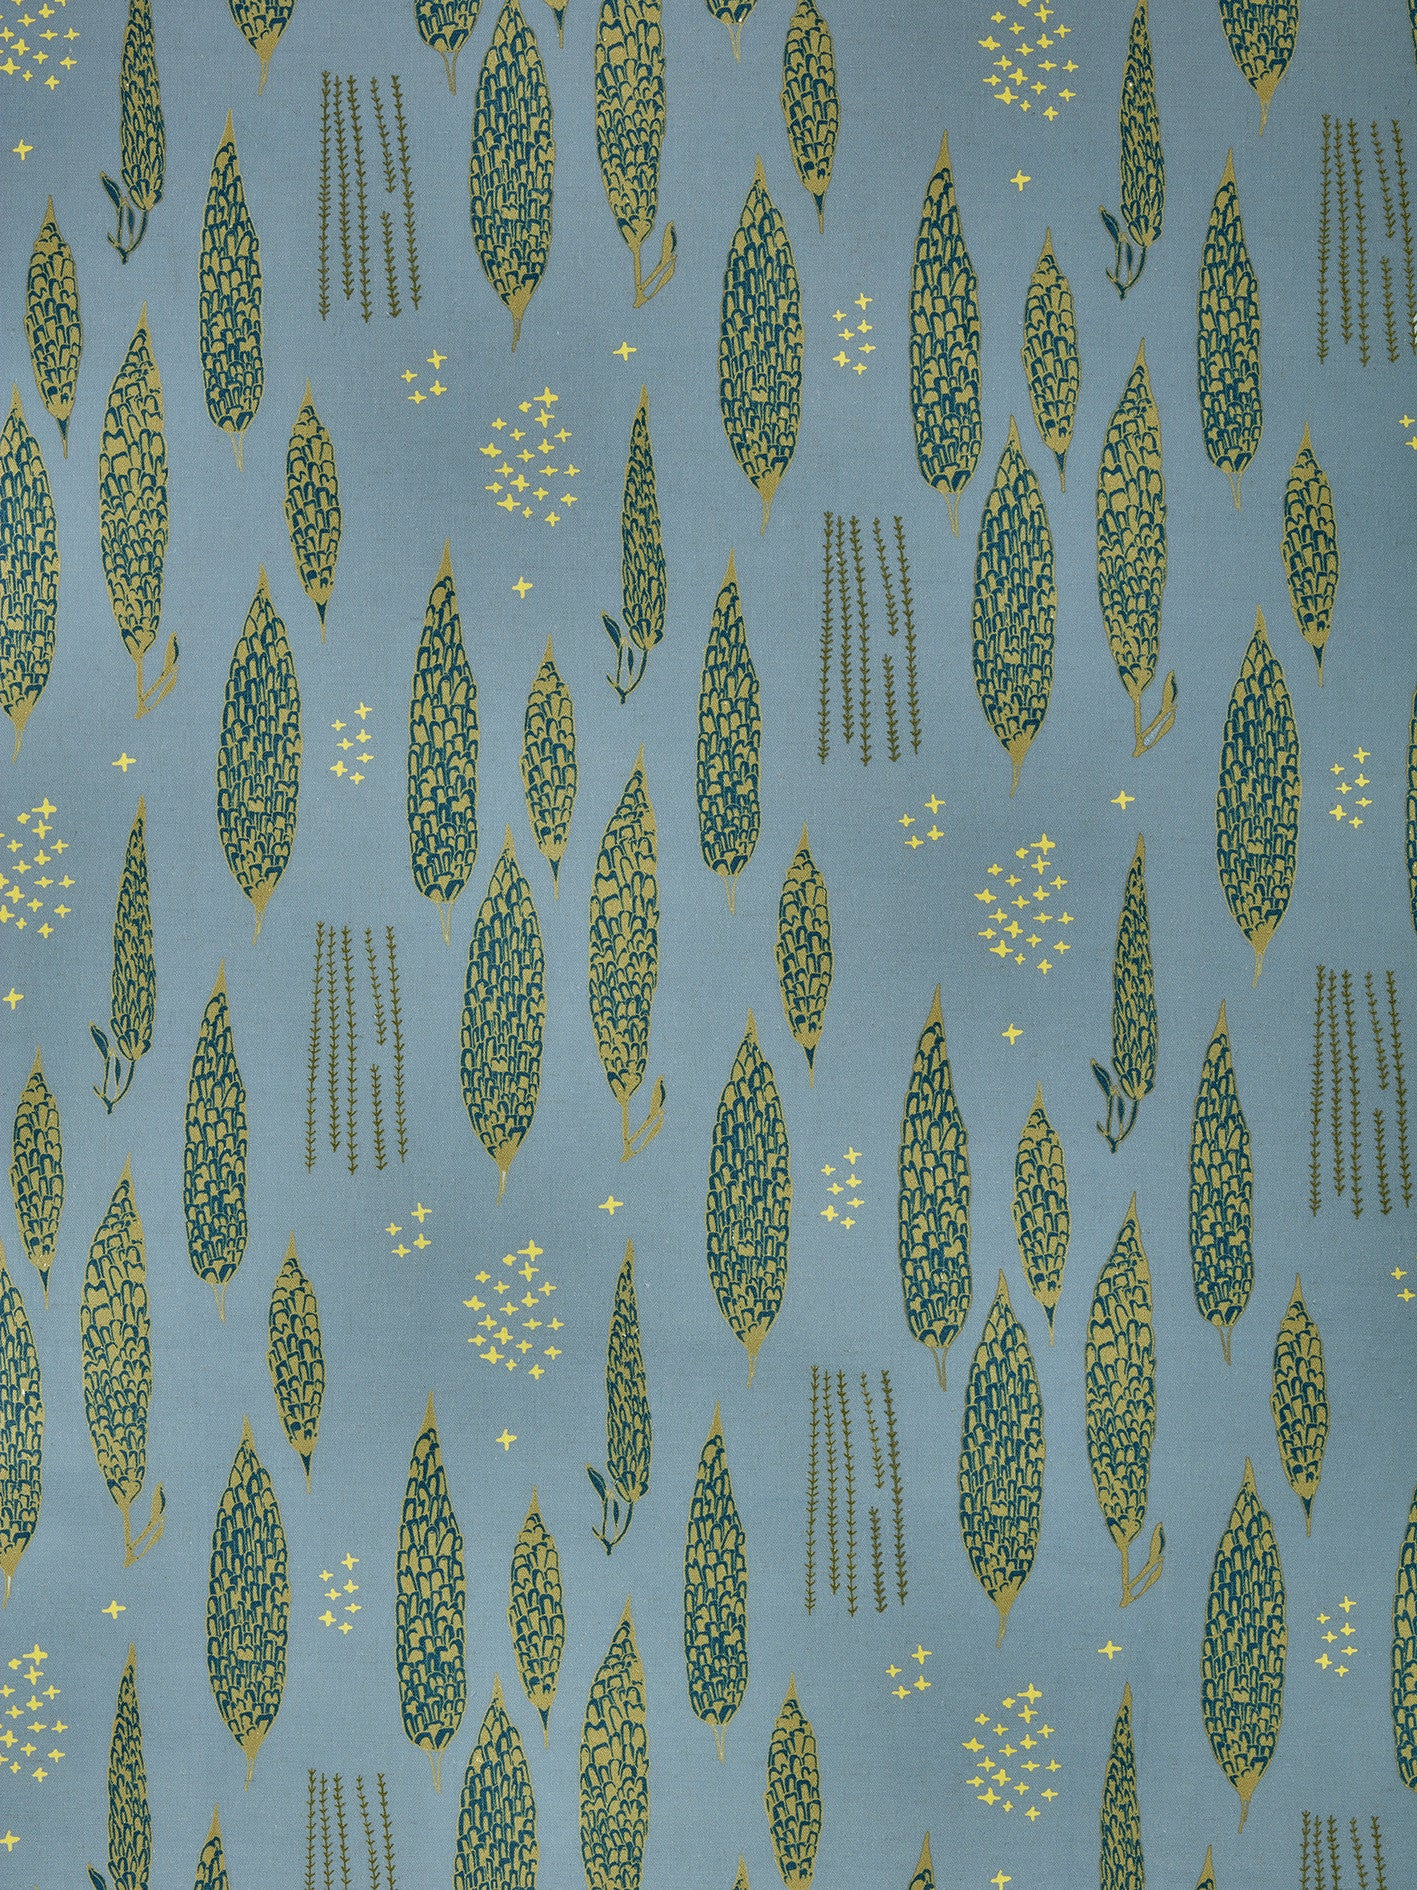 Graphic Rosemary Sprig Pattern Printed Linen Cotton Canvas Fabric in Light Winter Blue, Antique Moss Green and Dark Petrol Blue